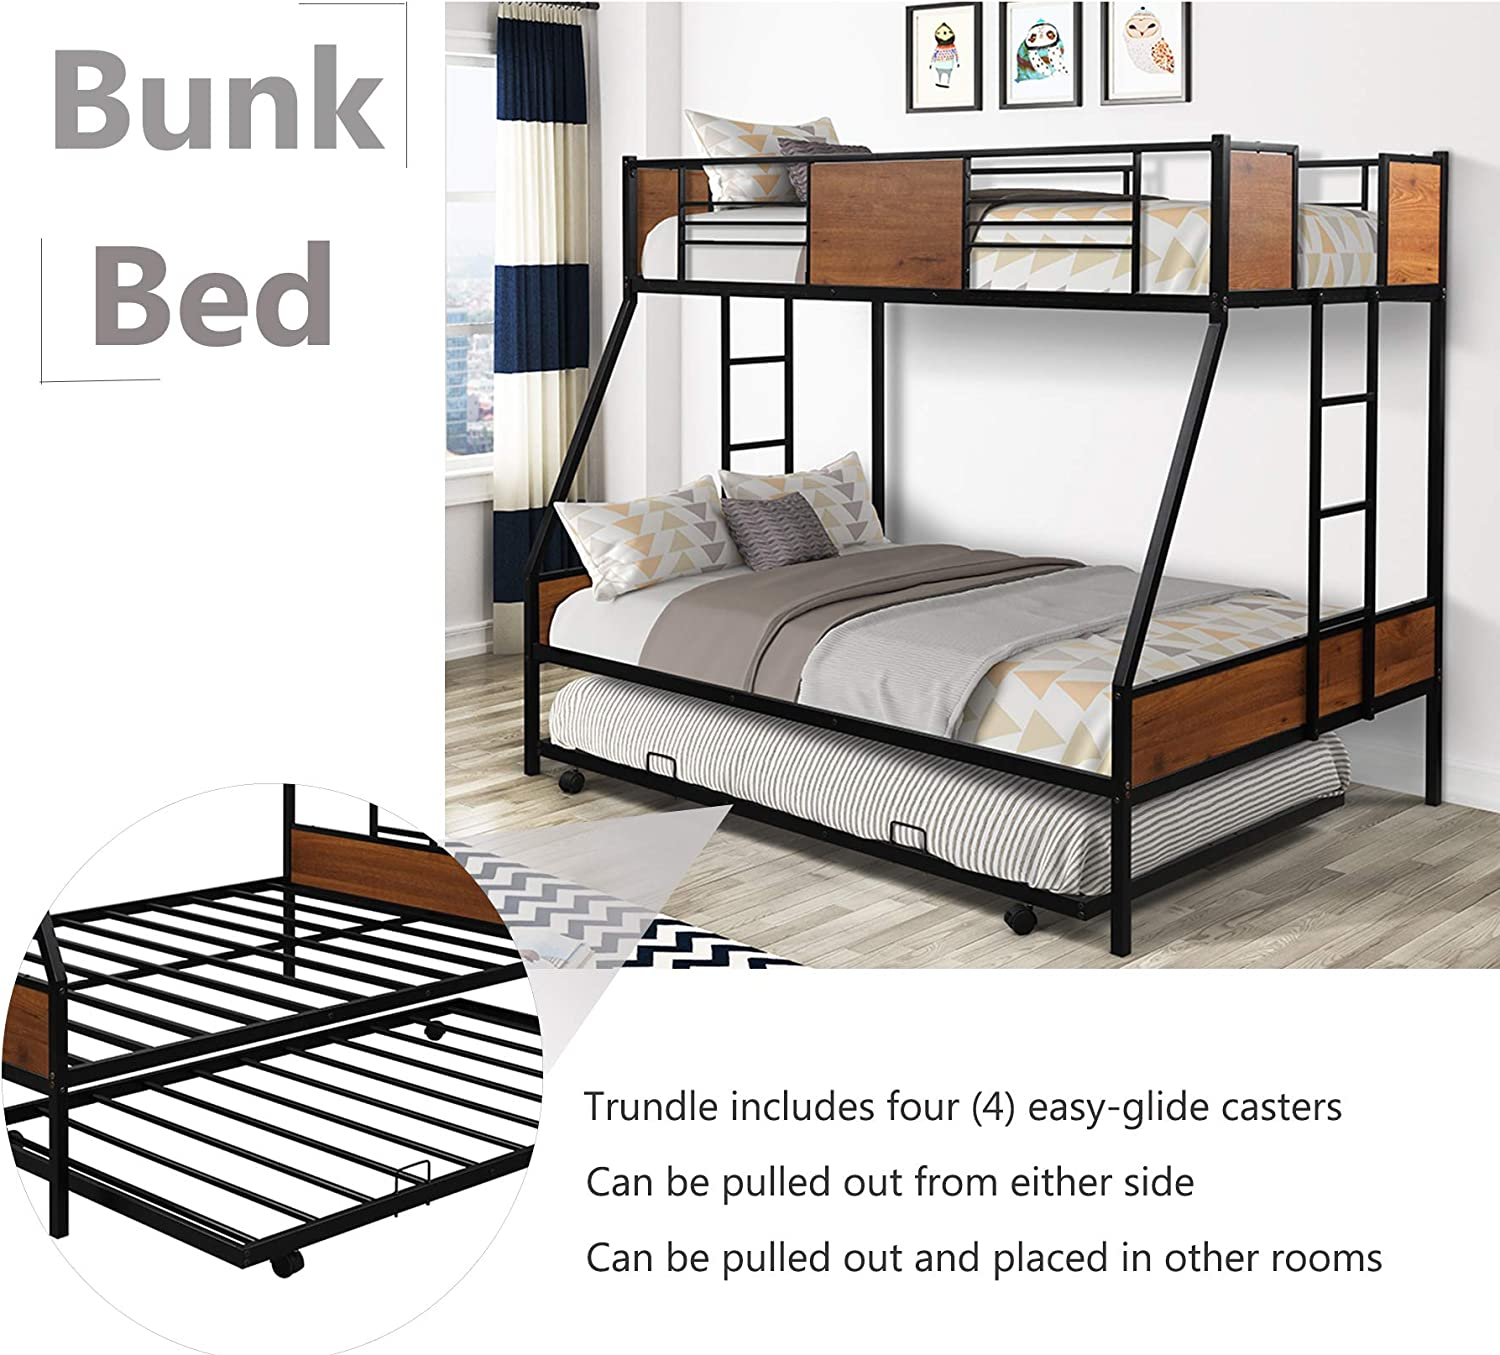 Buy Metal Bunk Bed Twin Over Full Bunk Bed With Trundle Heavy Duty Metal Bunk Bed Frame With Safety Rail And Two Side Ladders For Kids Teens Adults Black Online In Indonesia B08jtk2rf5